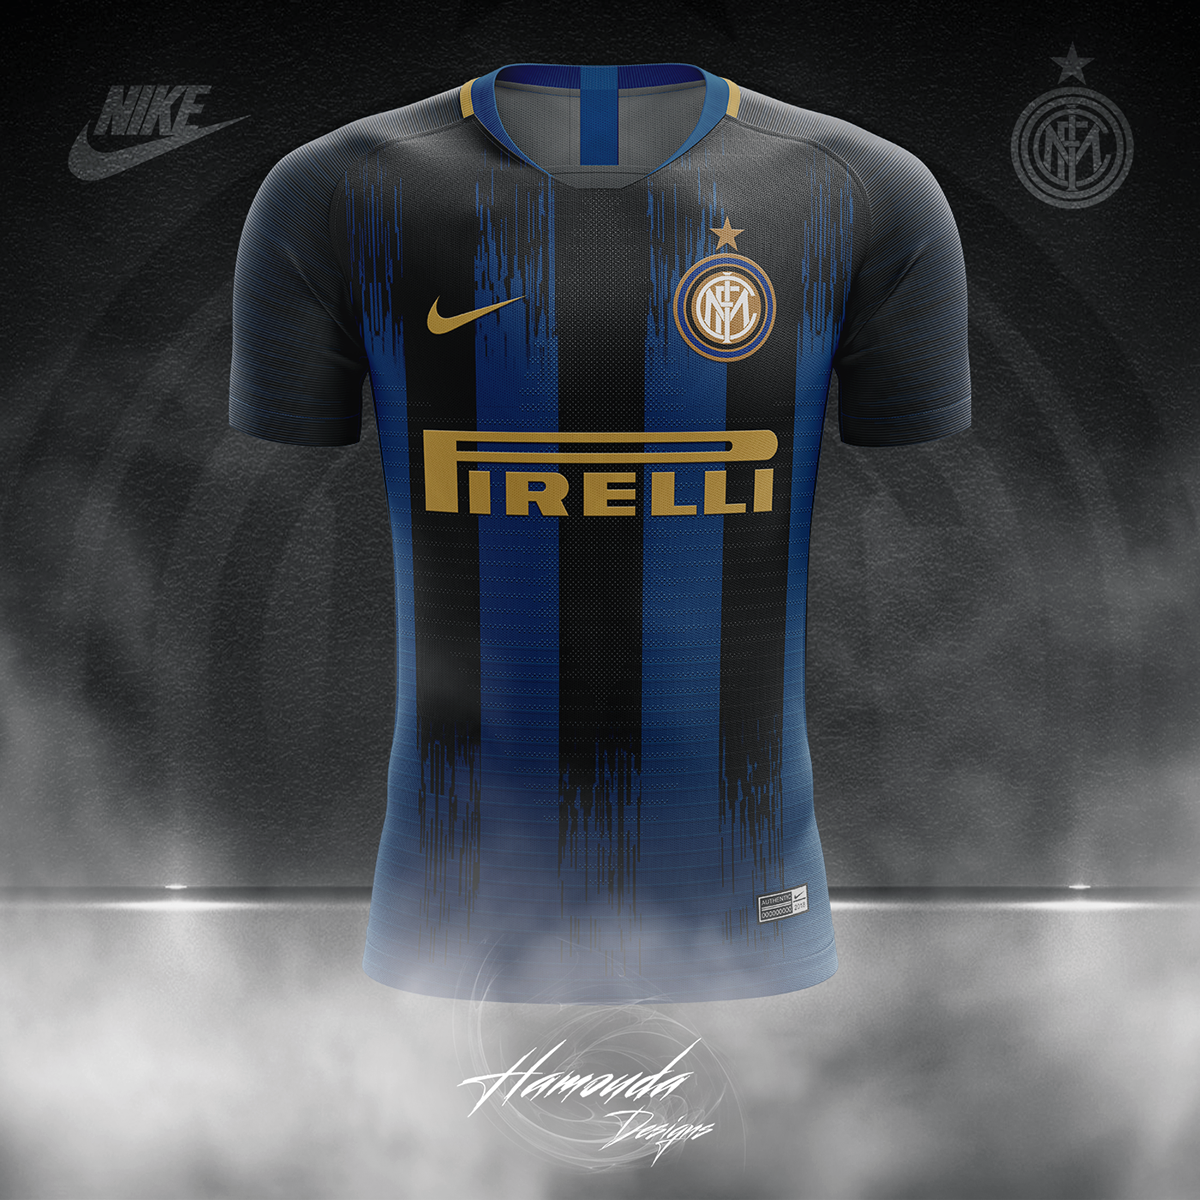 finest selection 1601e d227c Inter Milan Football Concept Kit 2018/2019 on Pantone Canvas ...